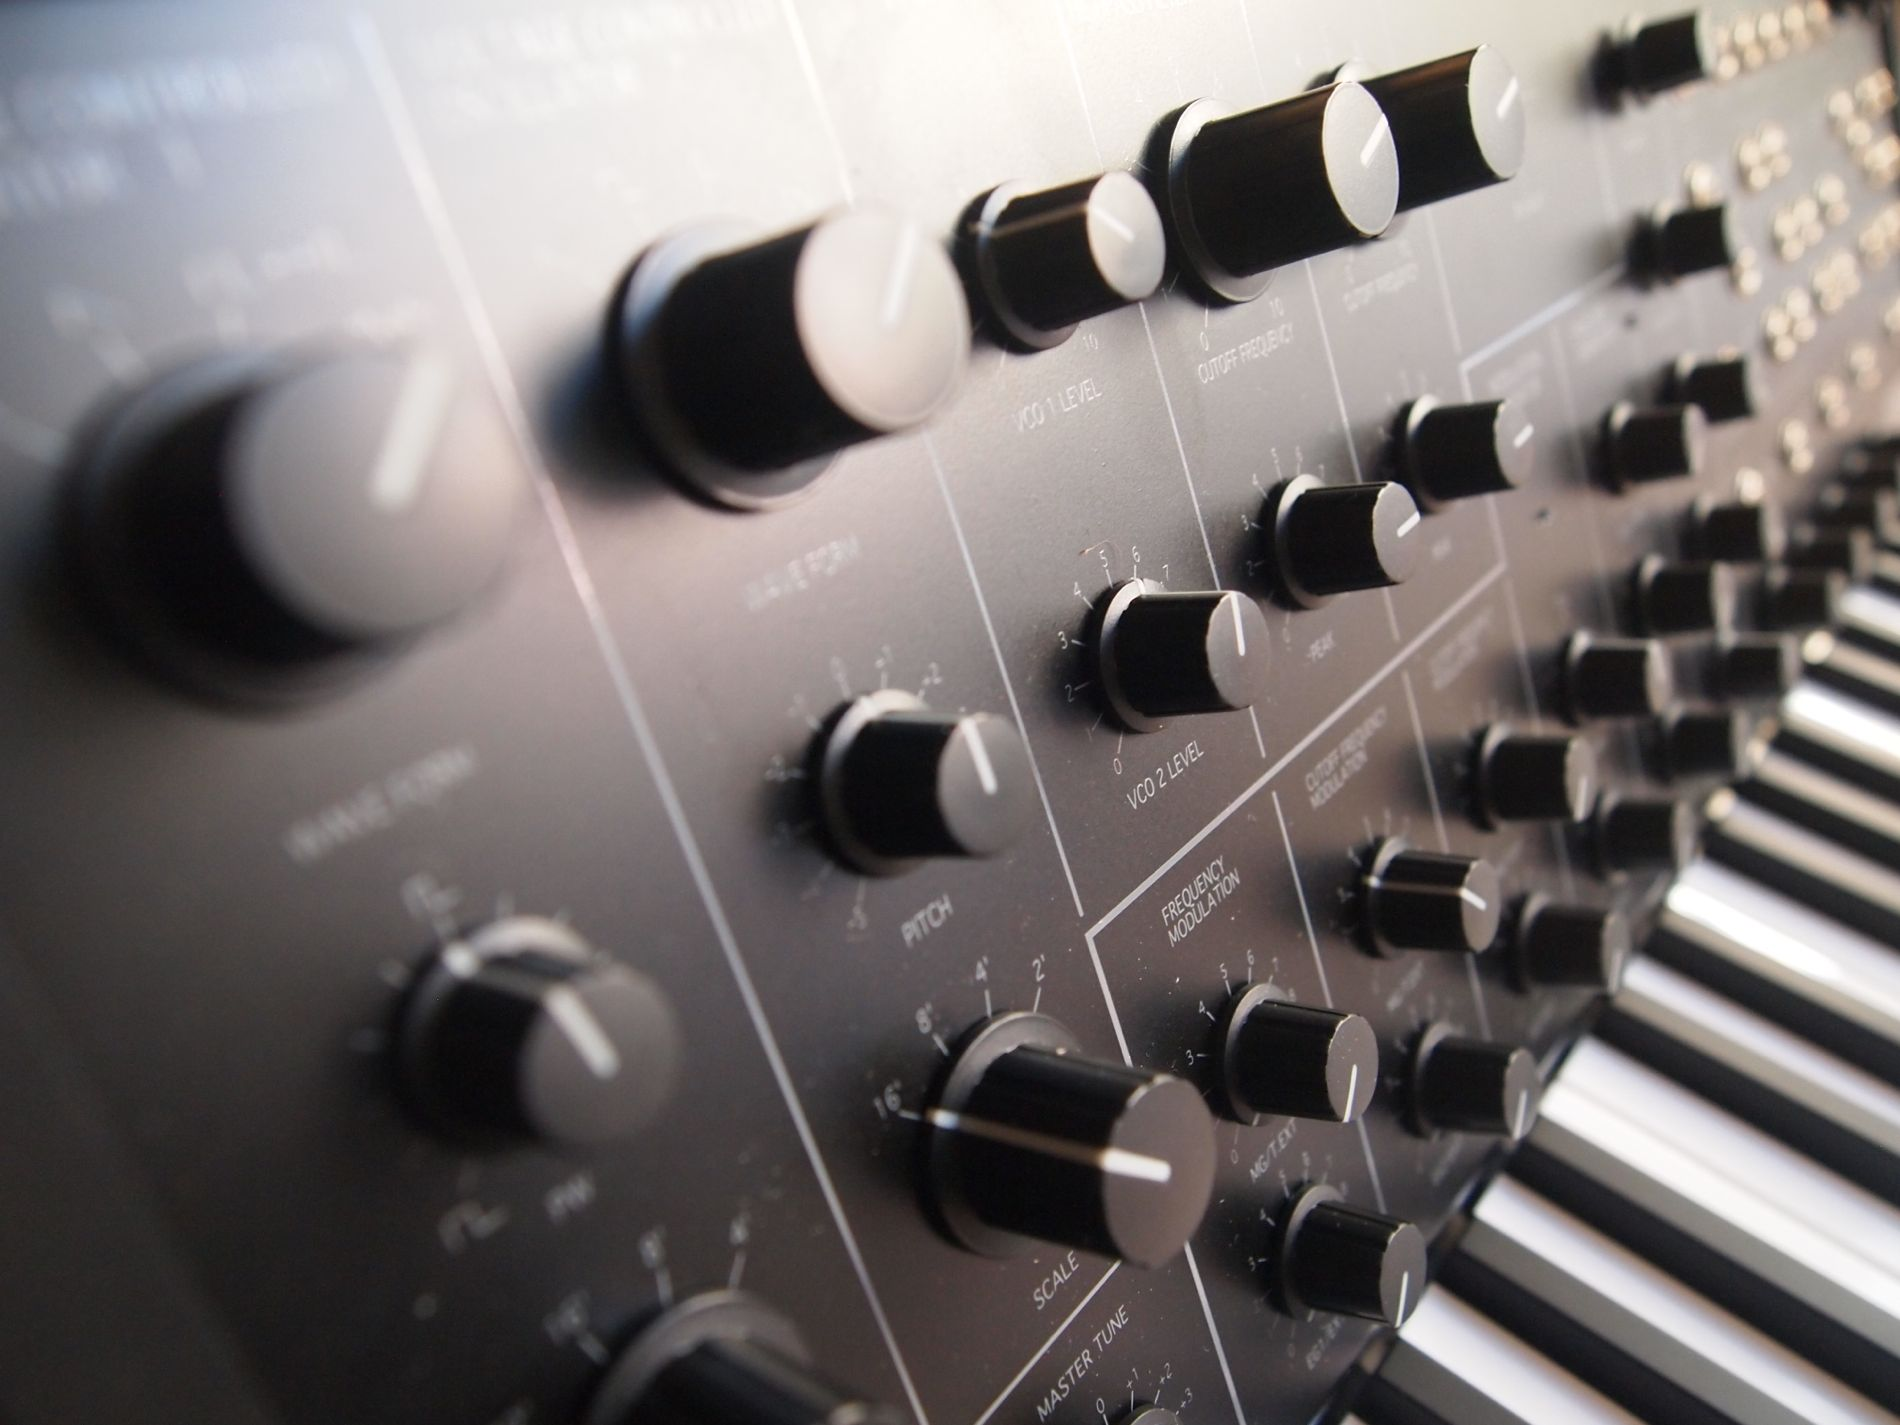 Ableton Goodies: Free MS-20 Simpler Instruments, Full of